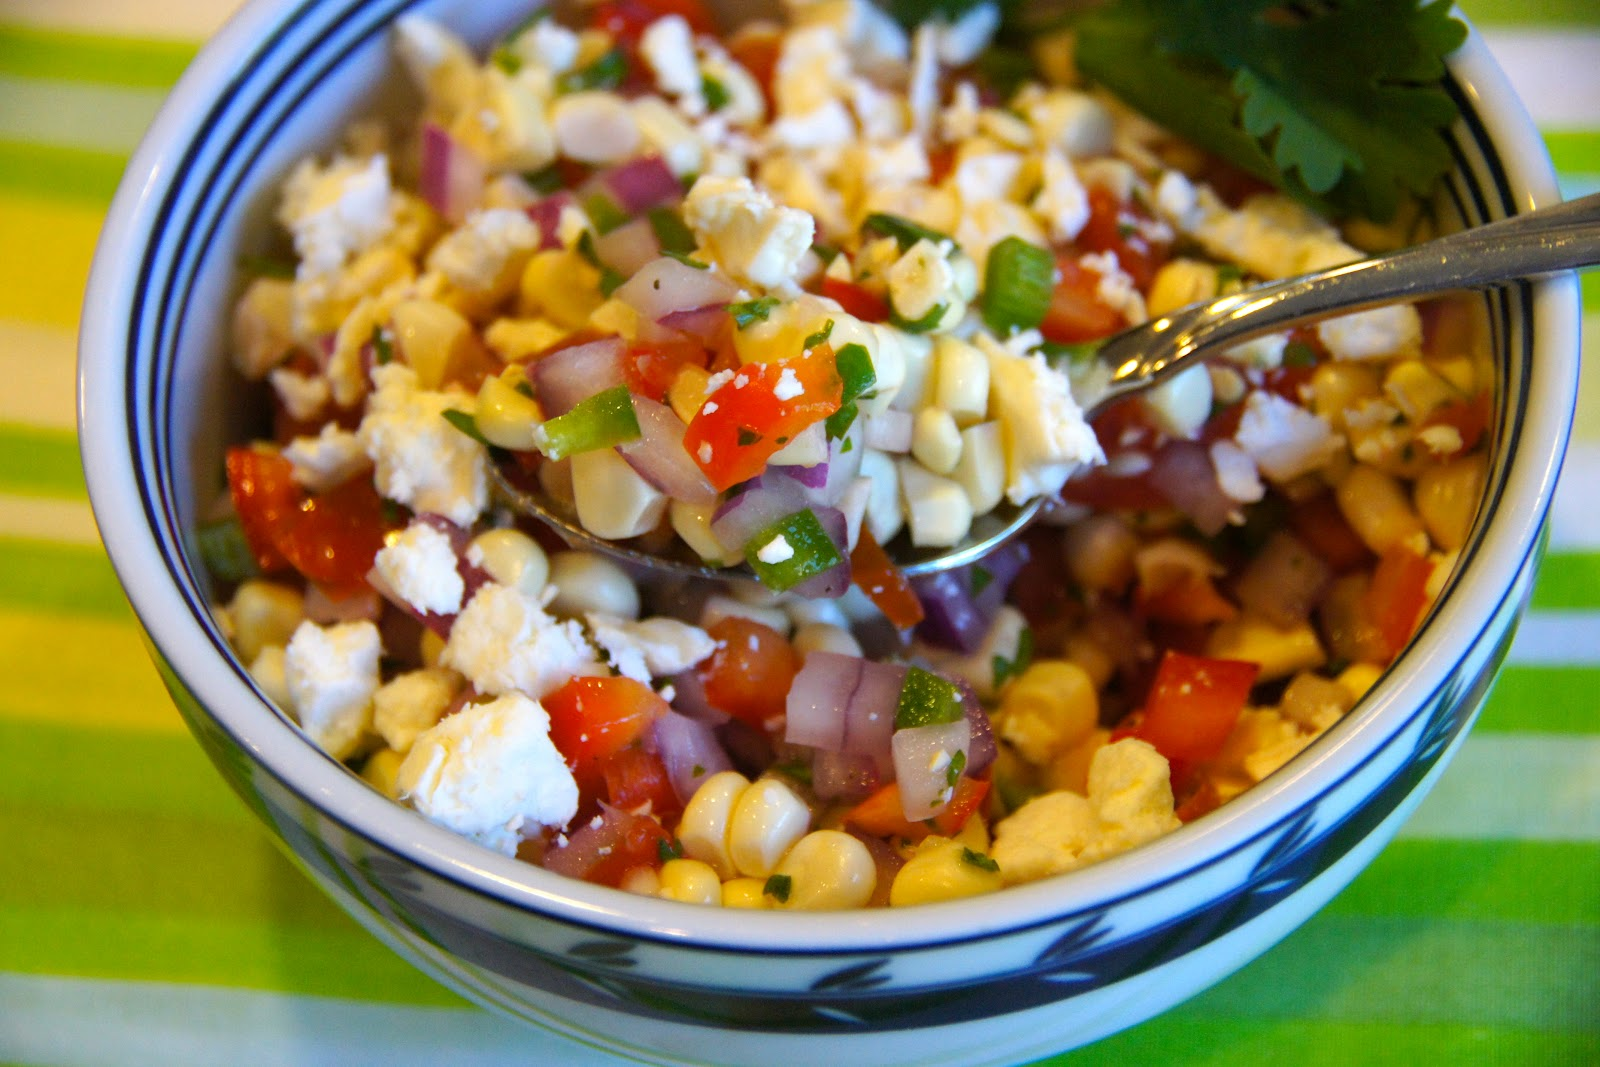 Family Food Finds: Fresh Sweet Corn and Tomato Salad